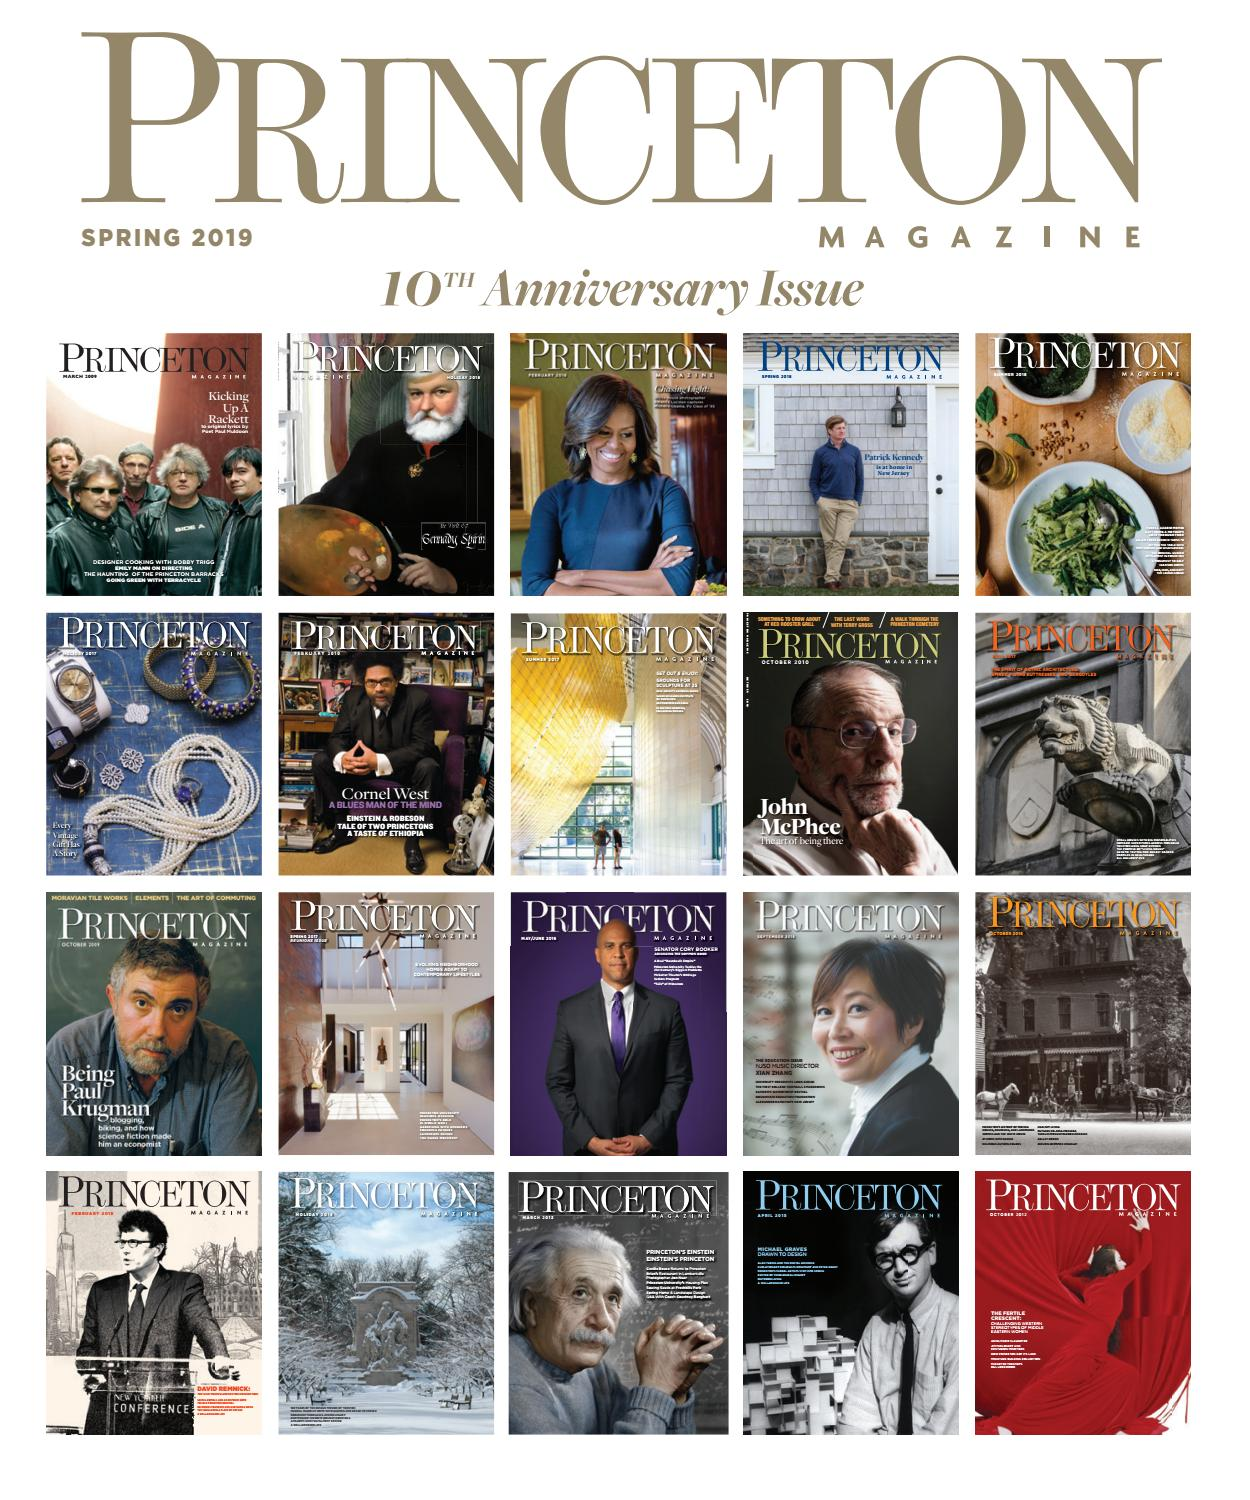 f53c11490ec4 Princeton Magazine Spring 2019 by Witherspoon Media Group - issuu